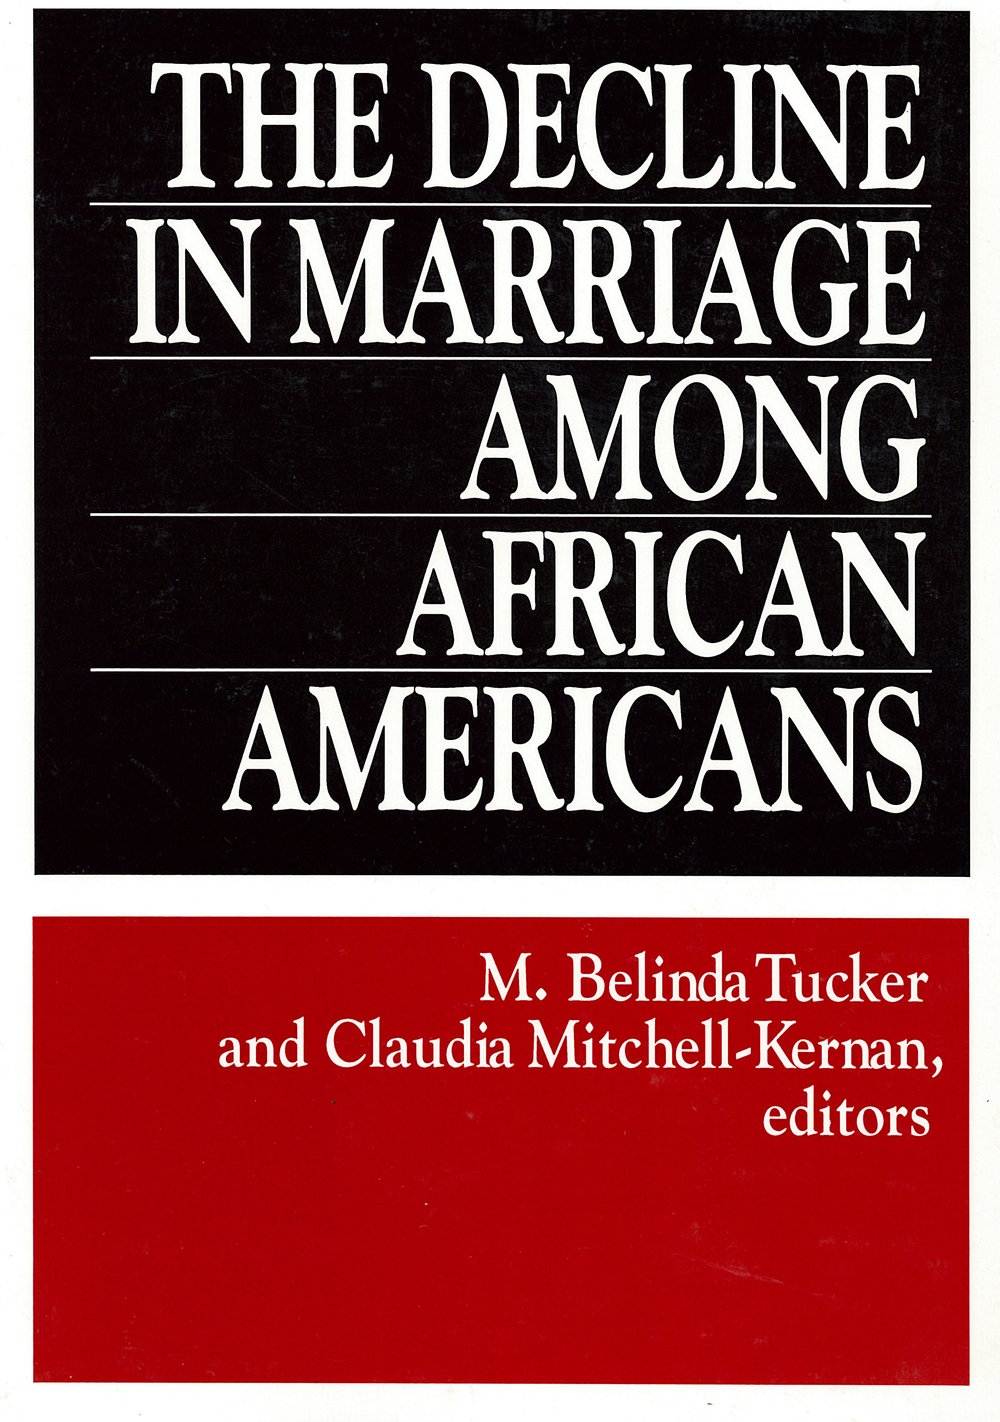 The Decline in Marriage Among African Americans